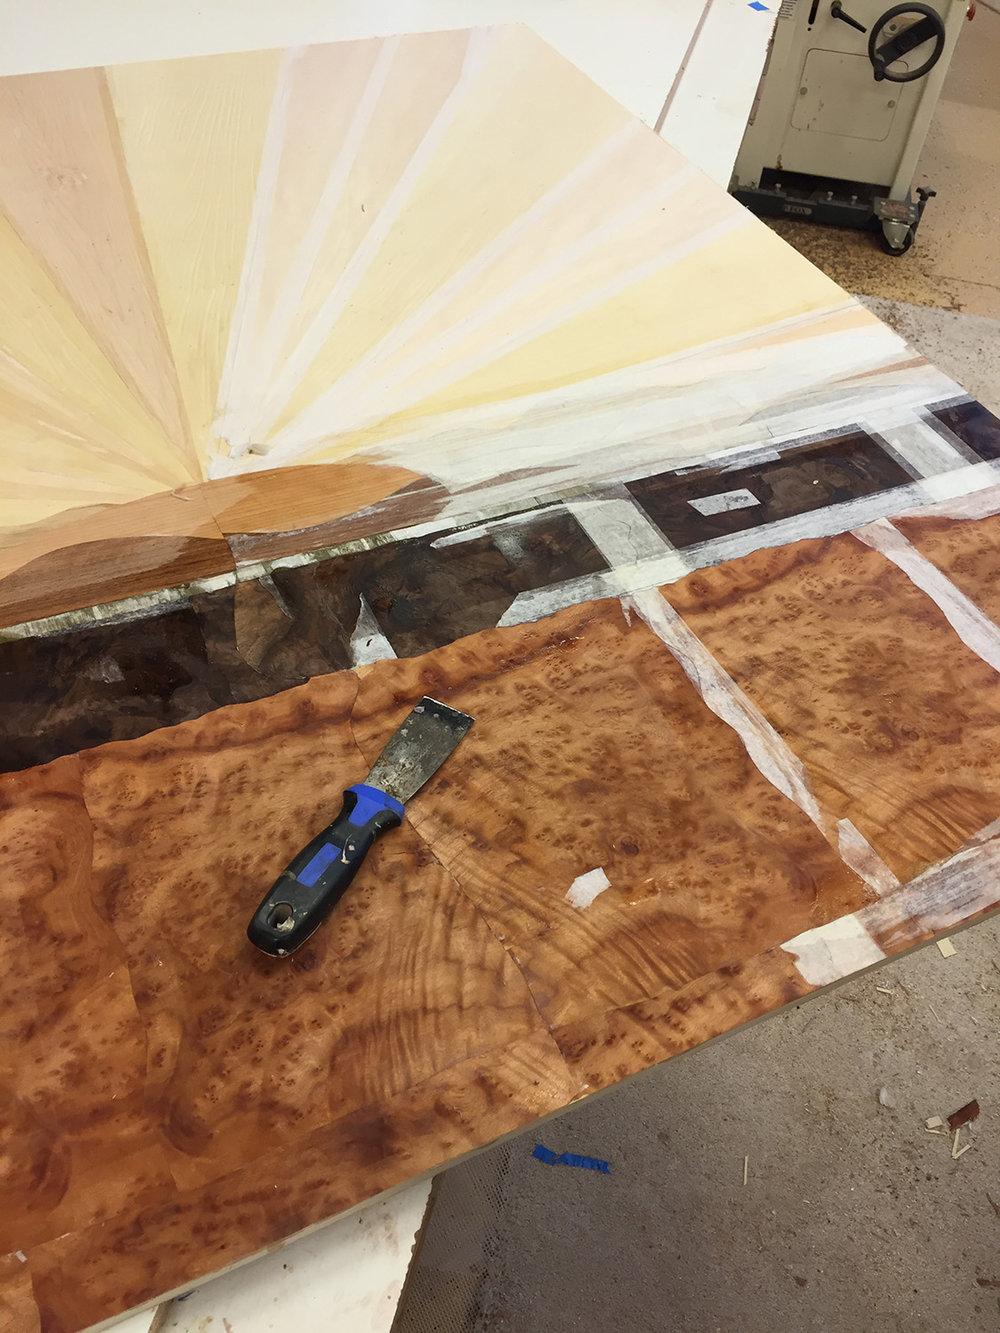 Removing veneer tape from the display's background.